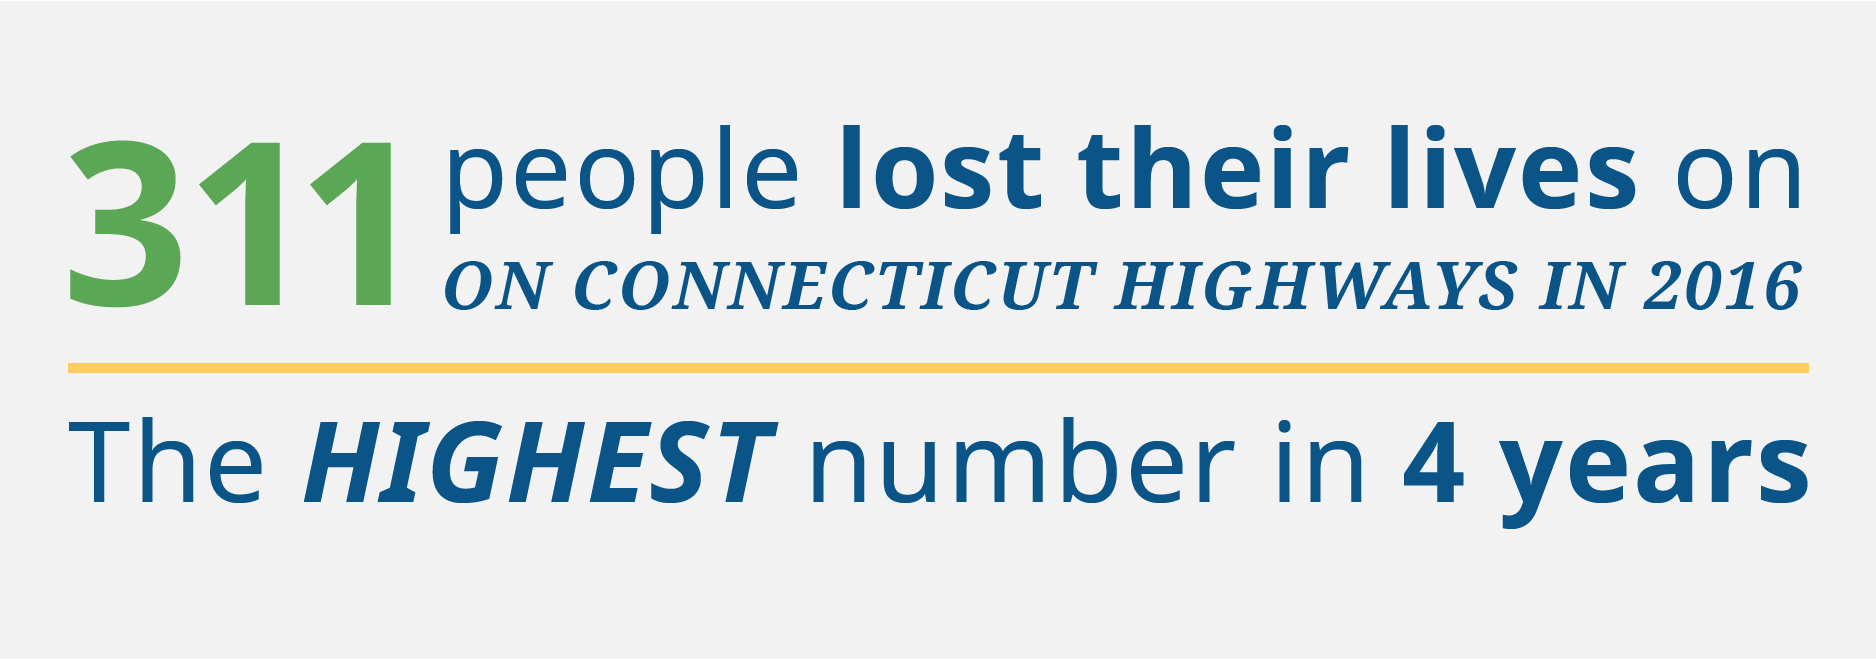 311 people lost their lives on Connecticut highways